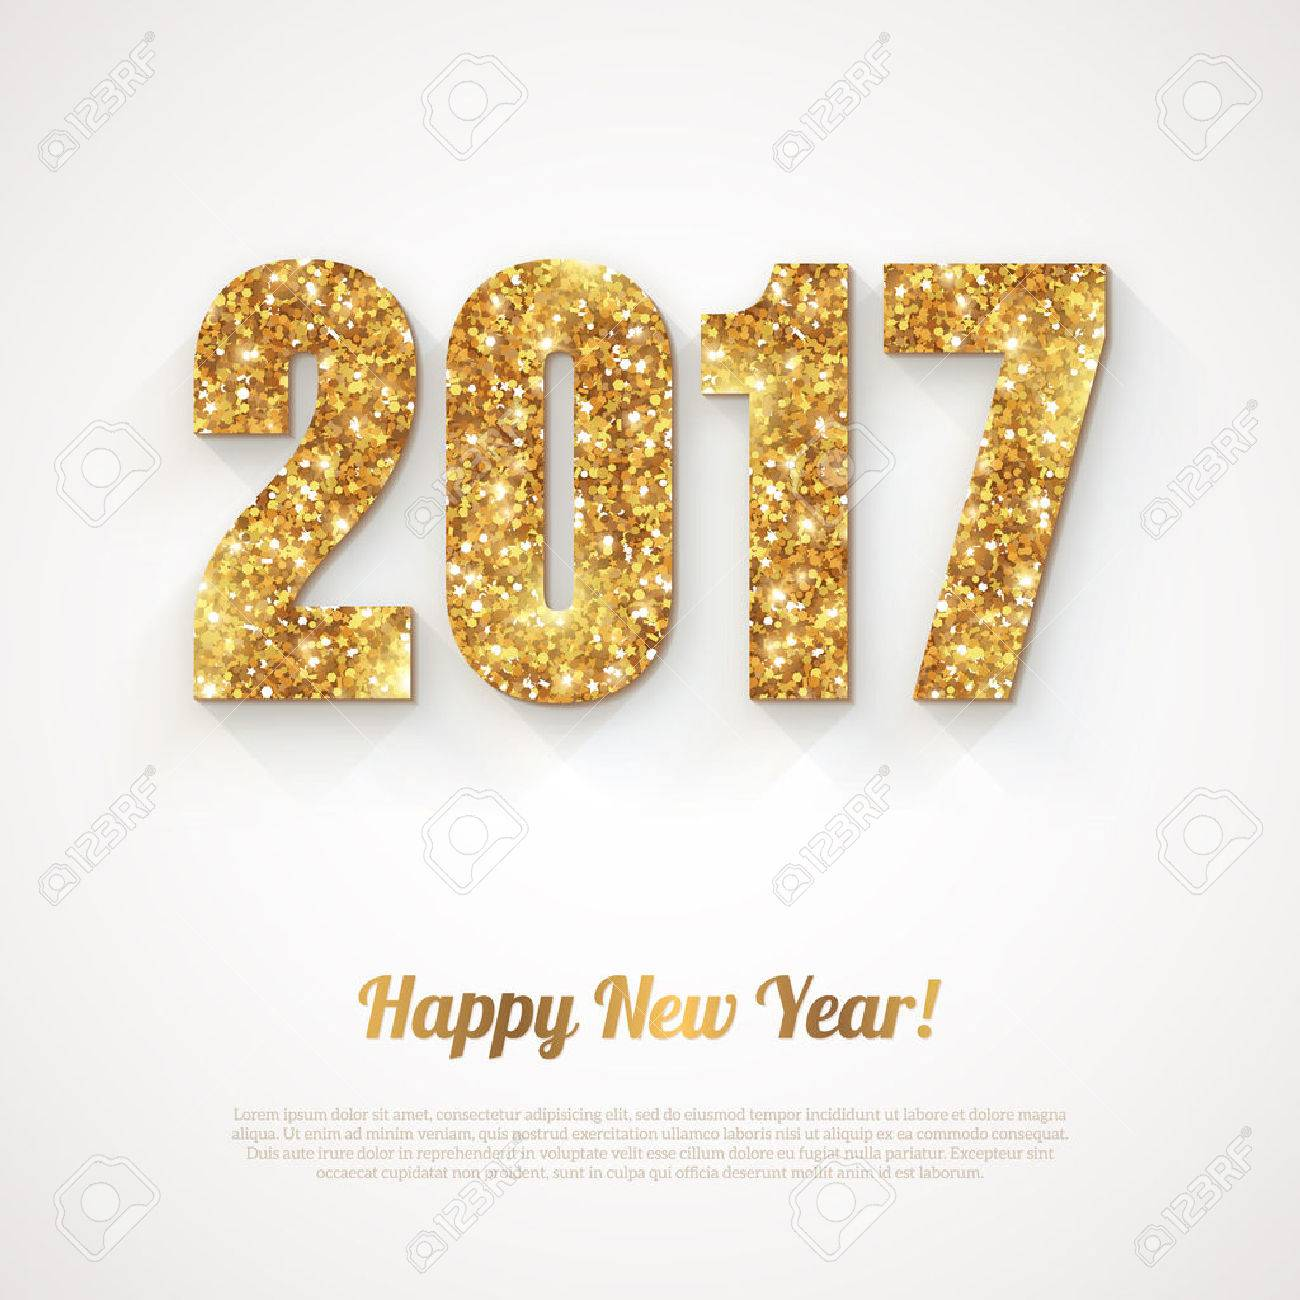 Happy New Year with 2017 Numbers on Bright Background. illustration. Gold Shining Pattern. - 63127007